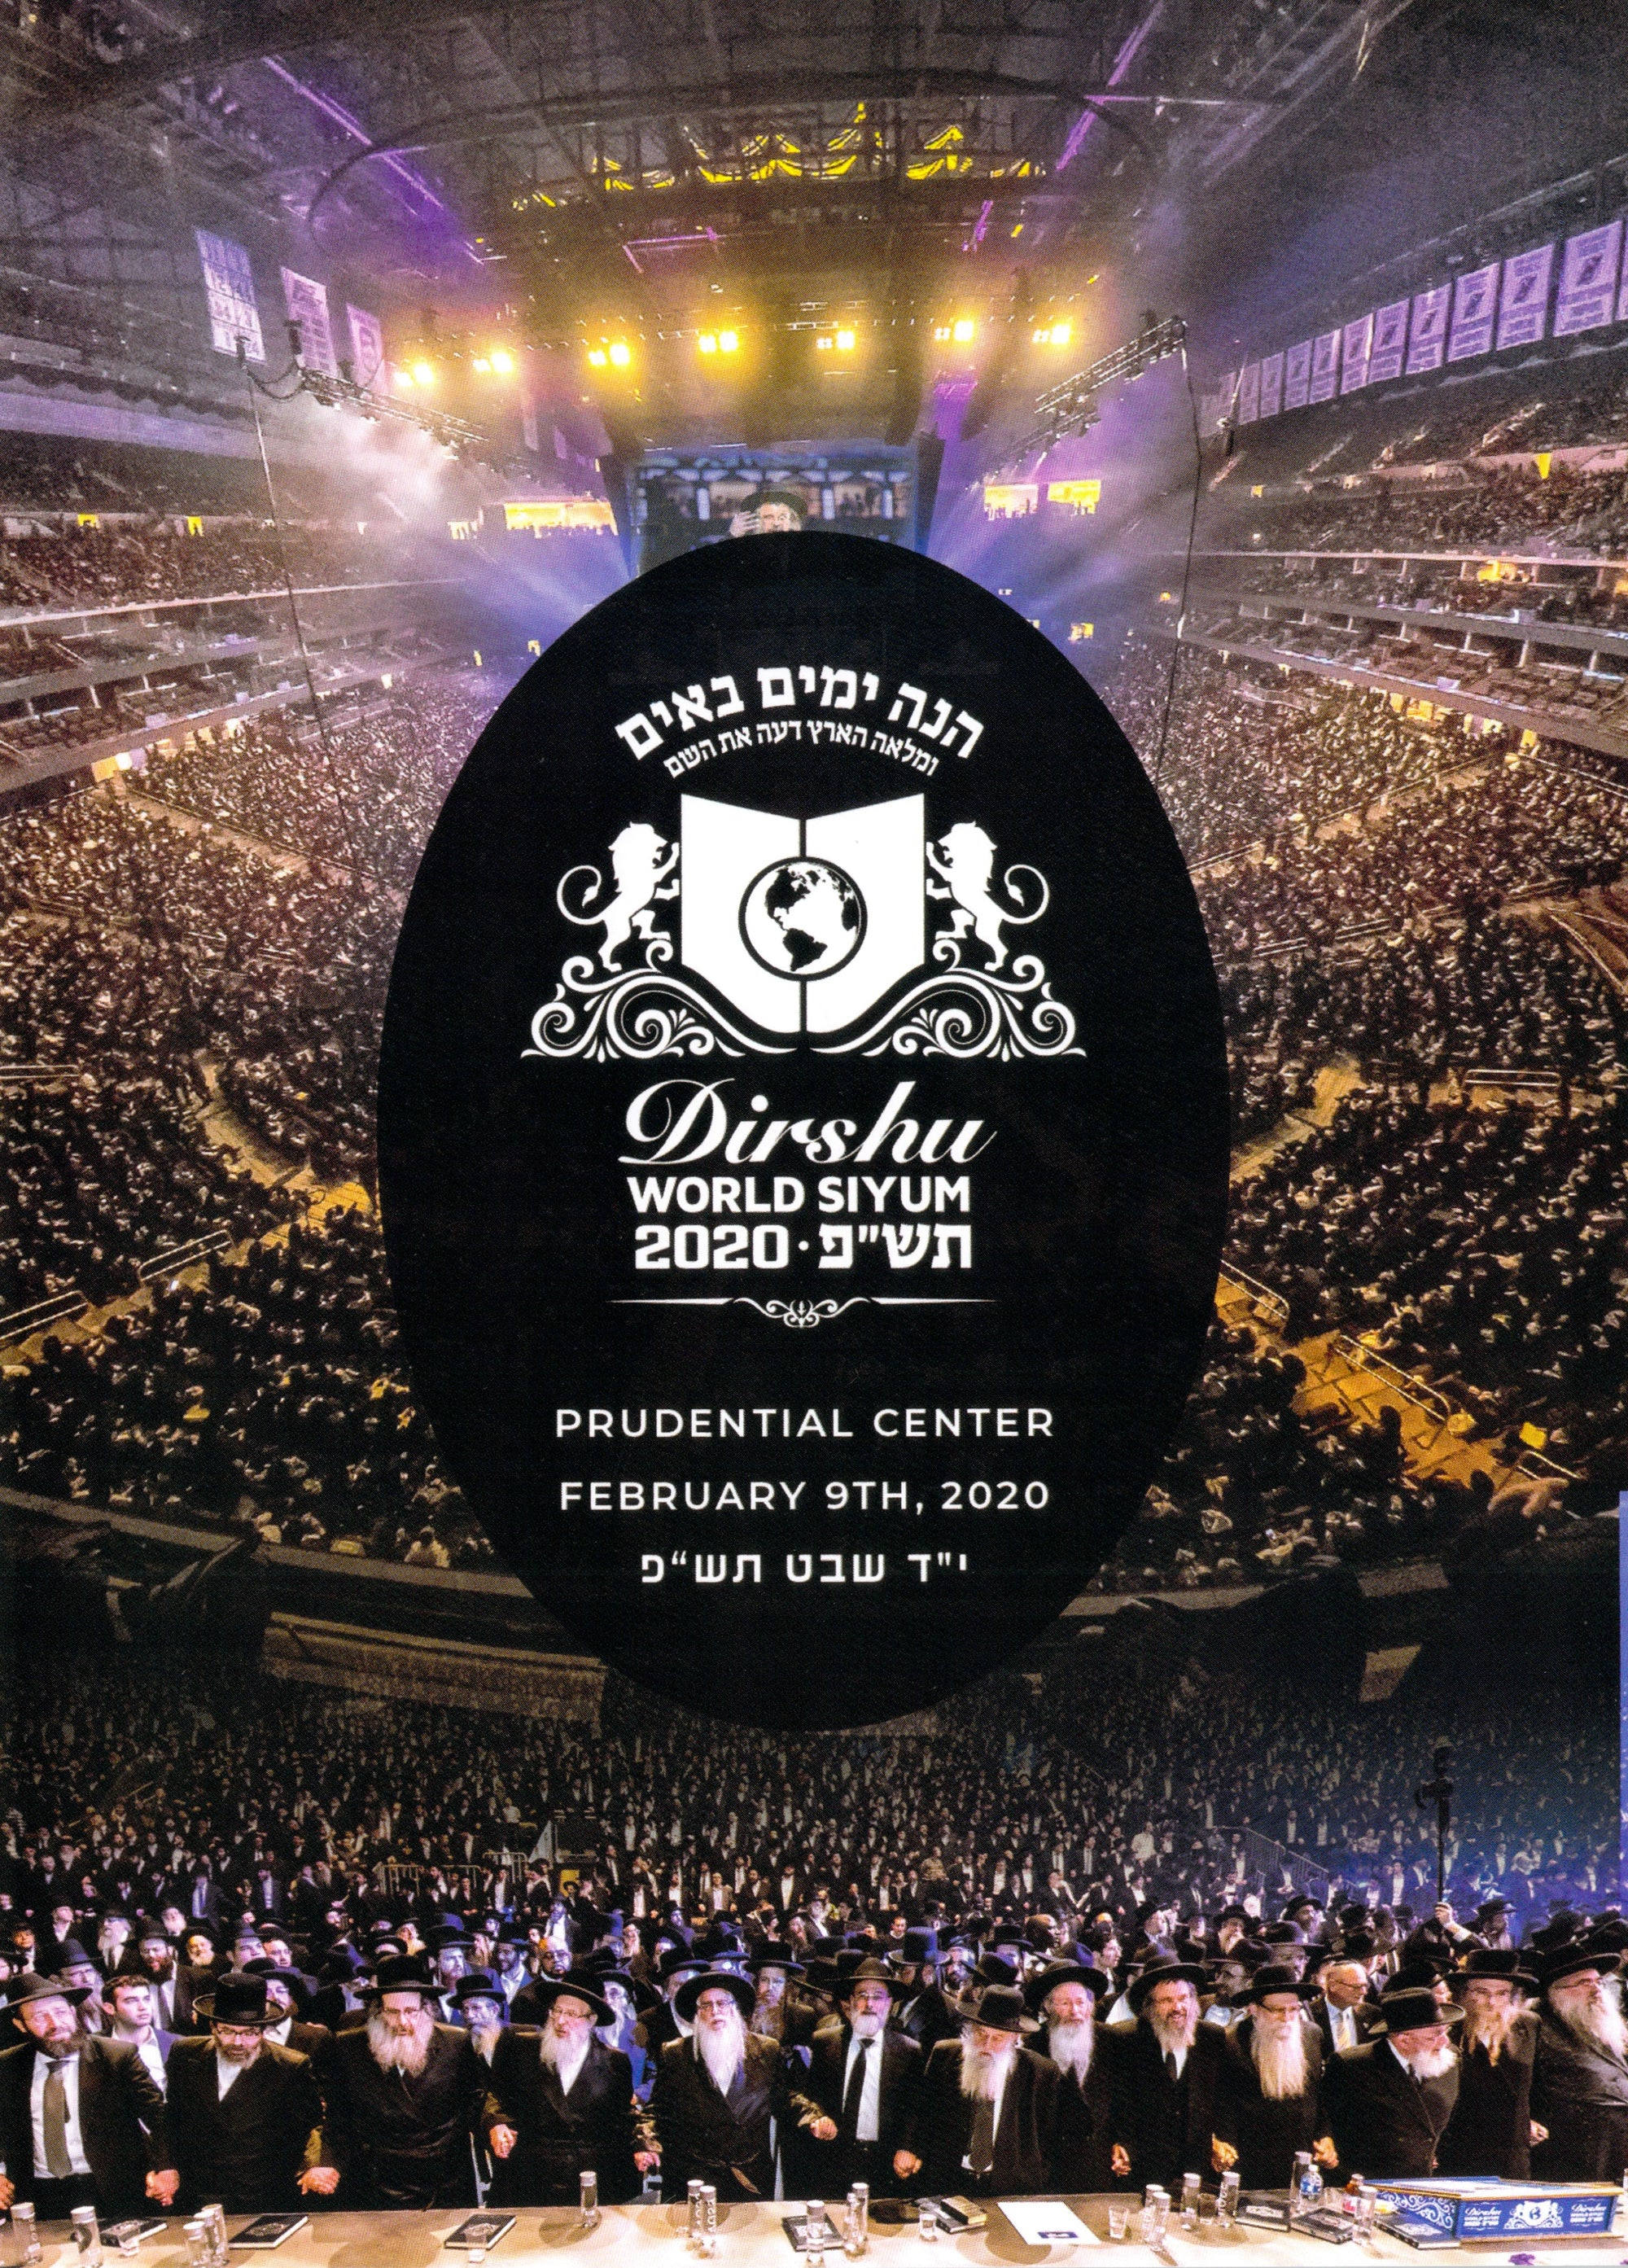 Dirshu - World Siyum 2020